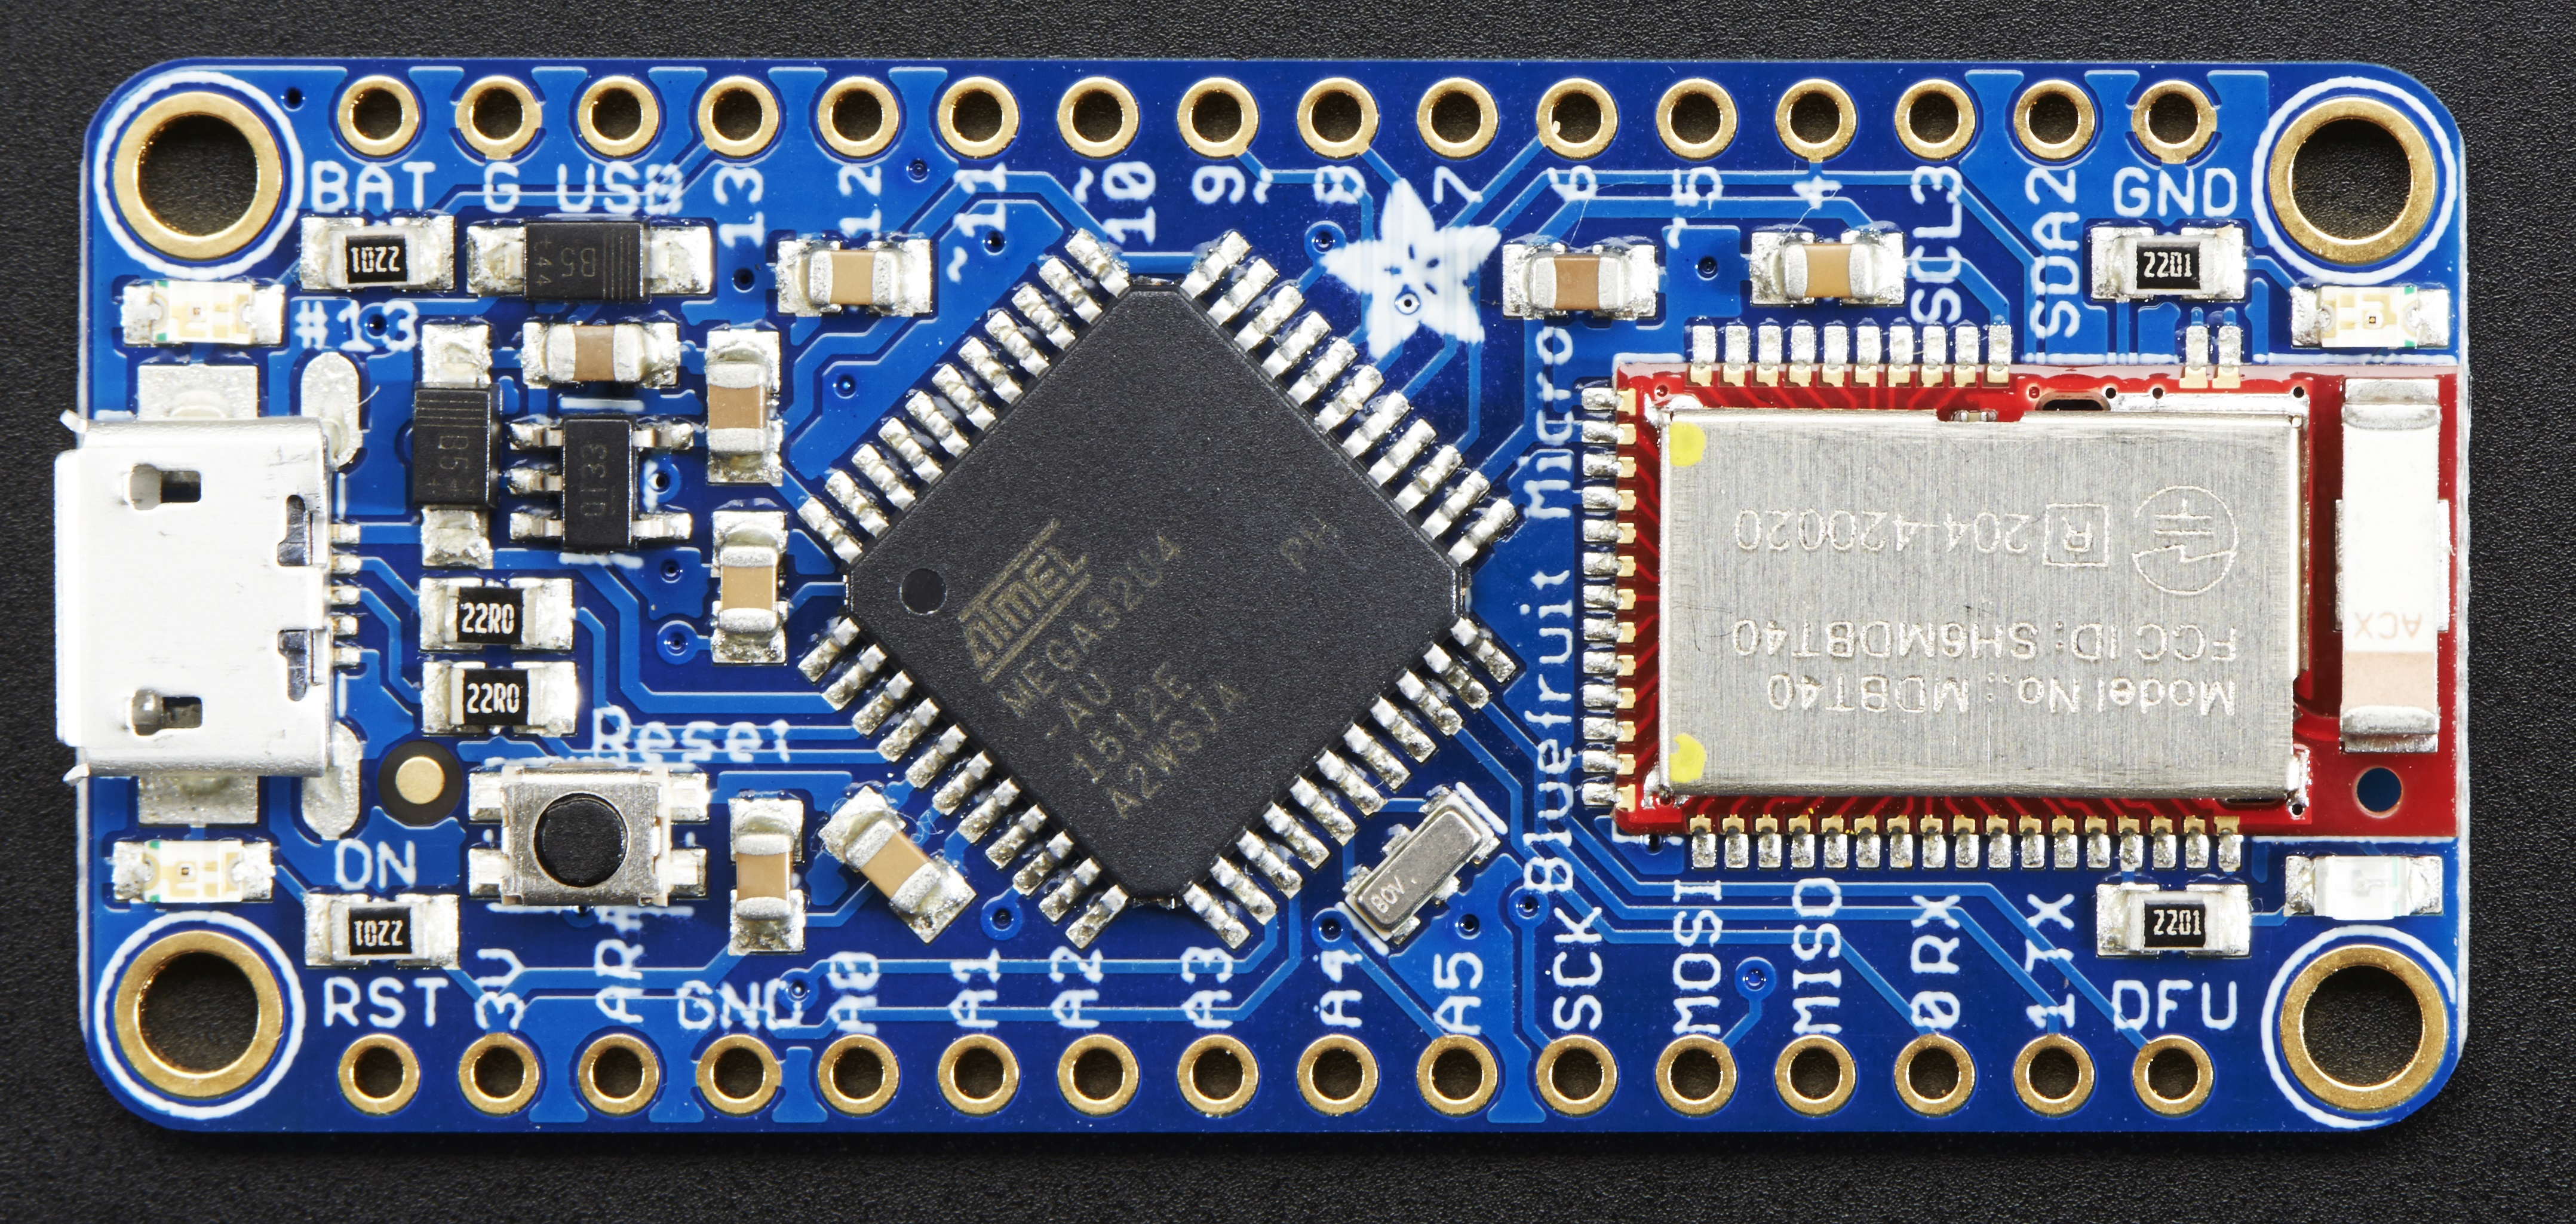 adafruit_products_2661_top_ORIG.jpg